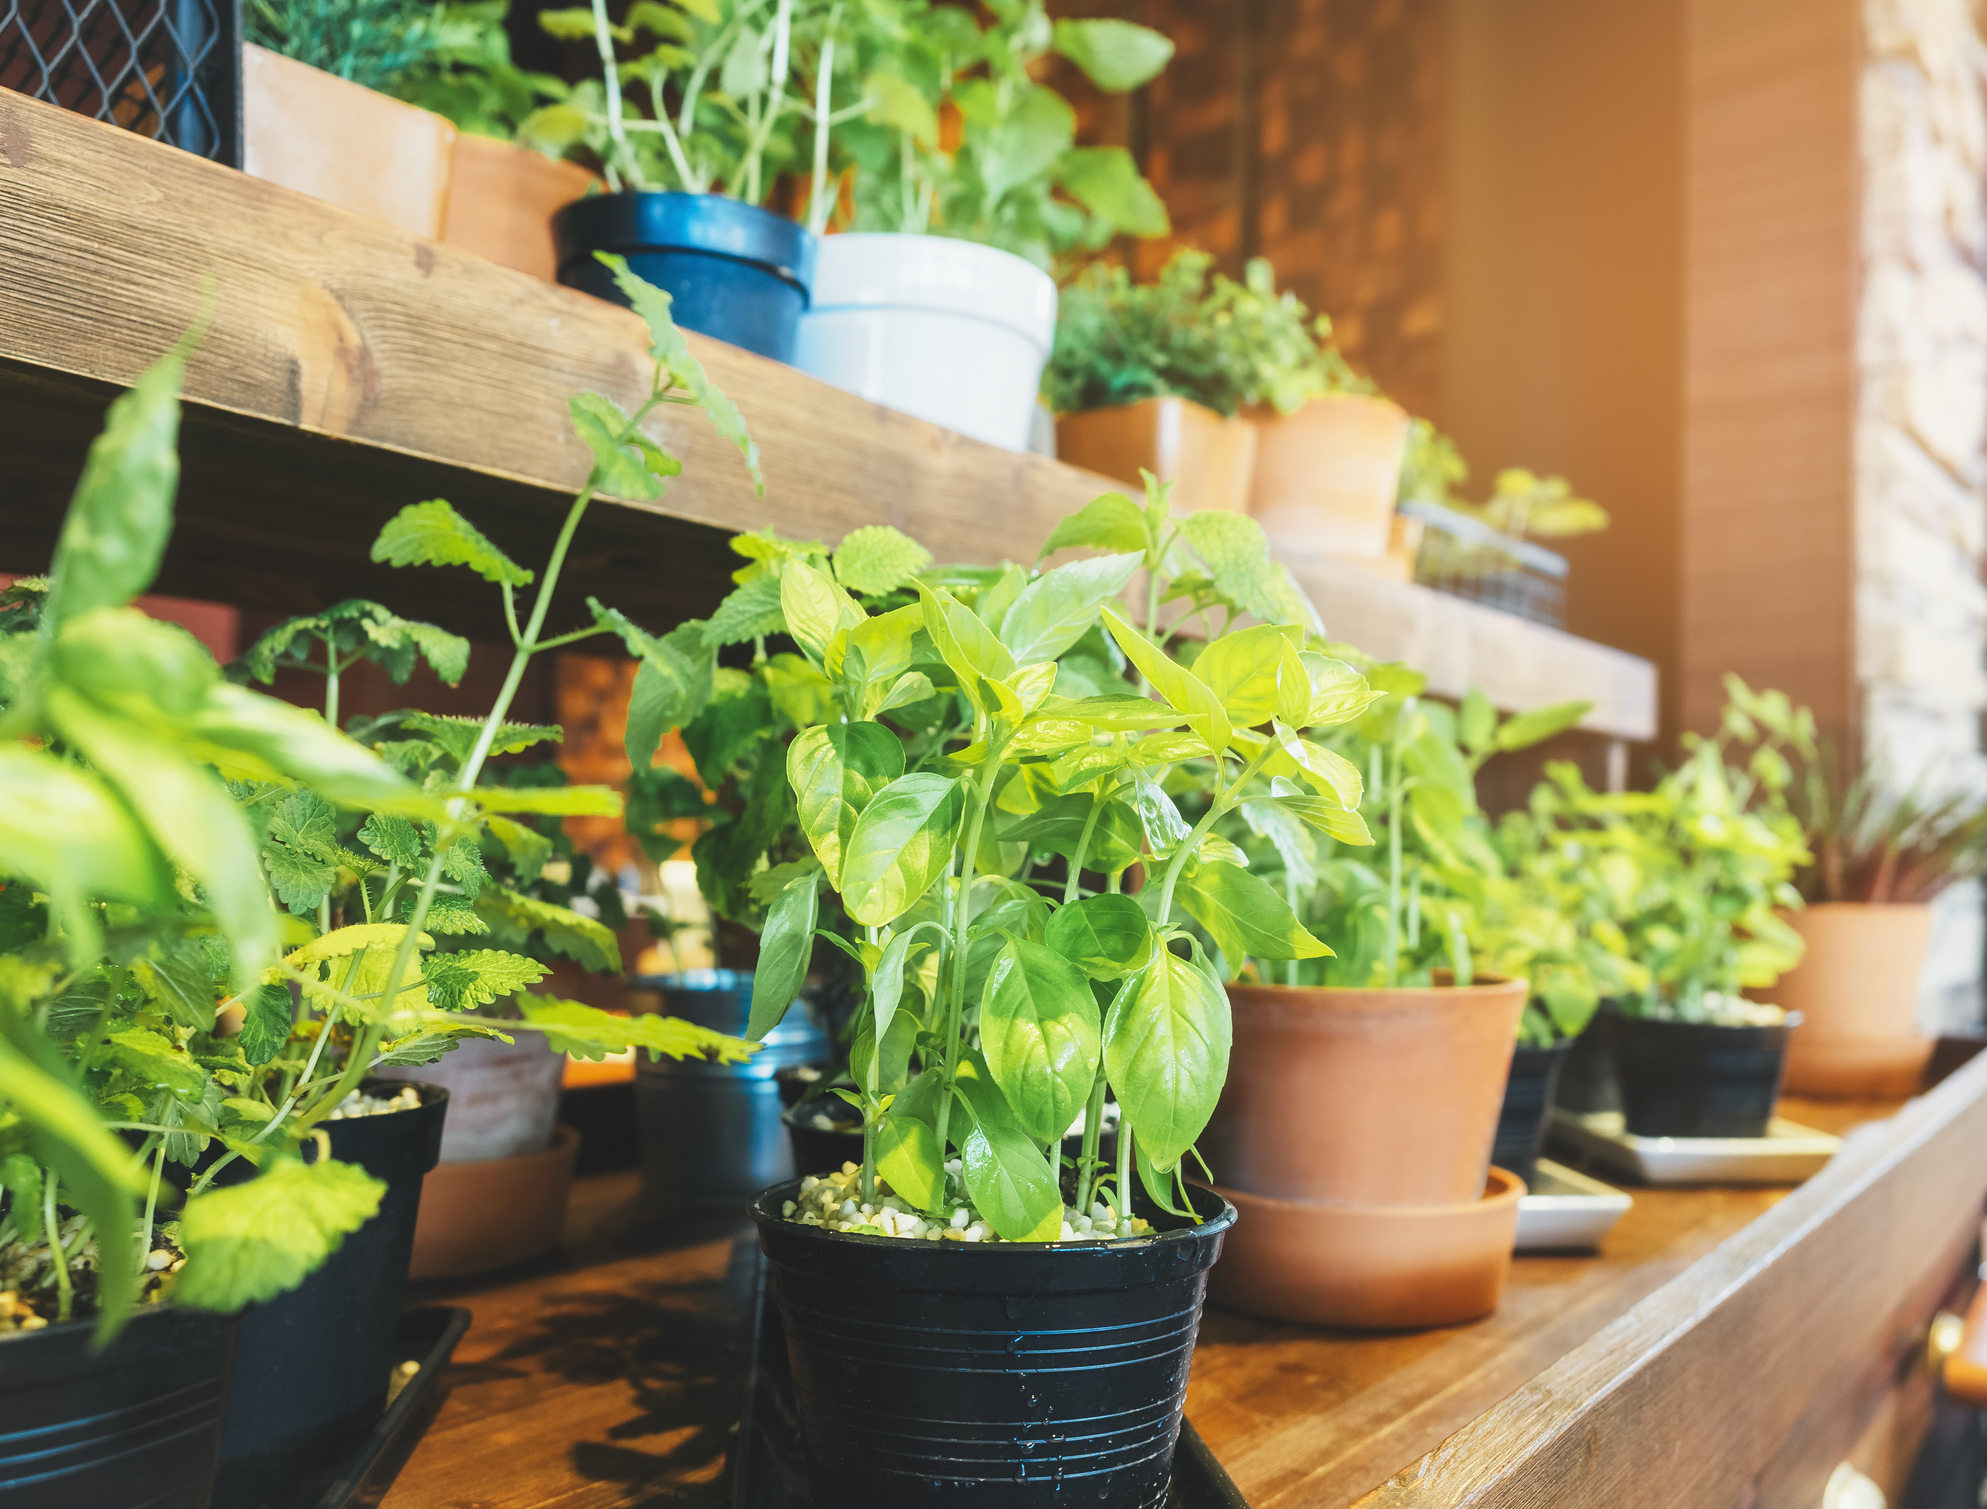 Tips to Start an Indoor Garden